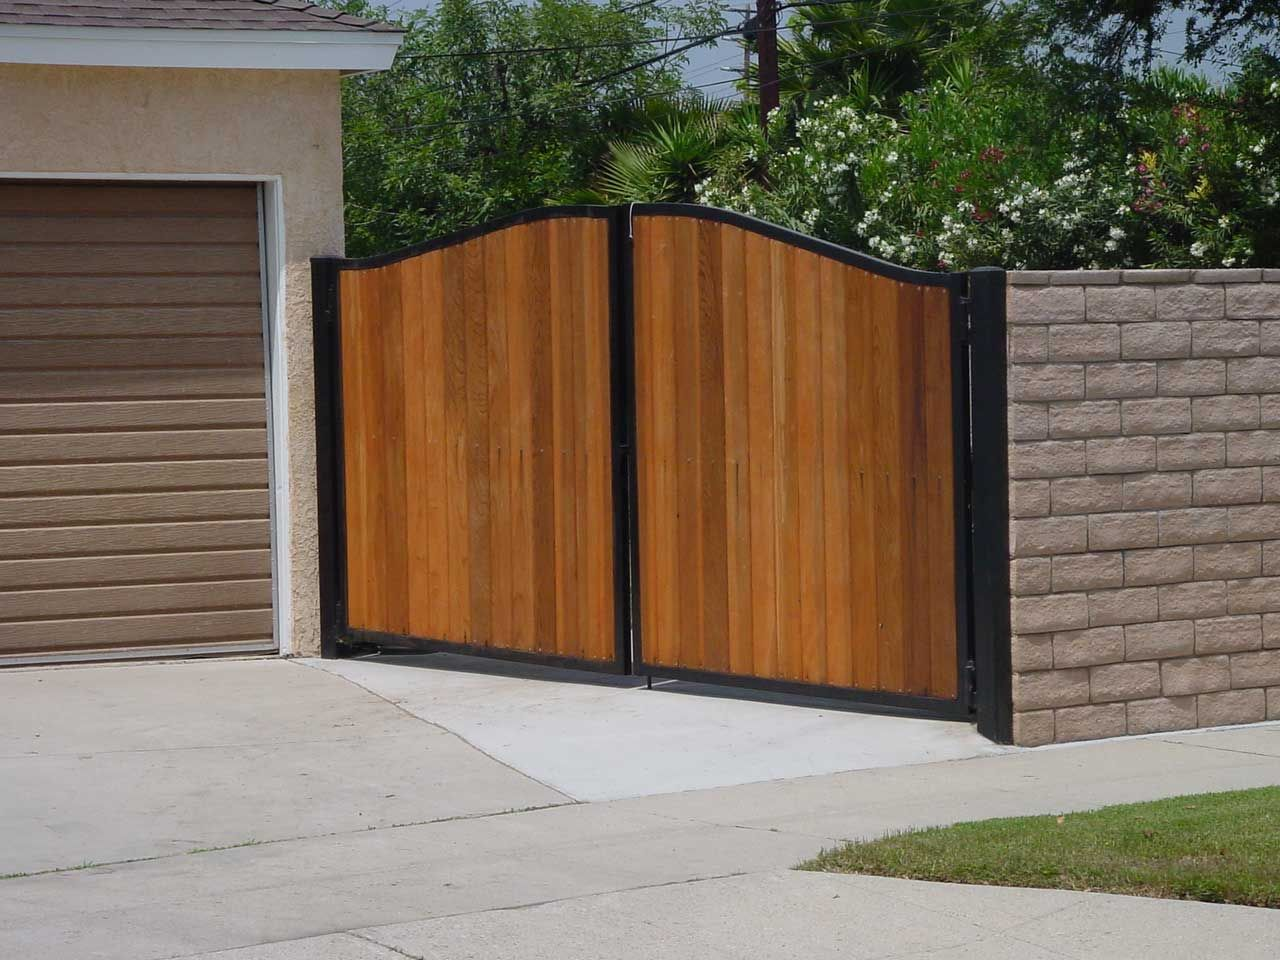 Wood Fence Designs For Perfect House Traba Homes Modern Home Fences Designs,  Gallery Wood Fence